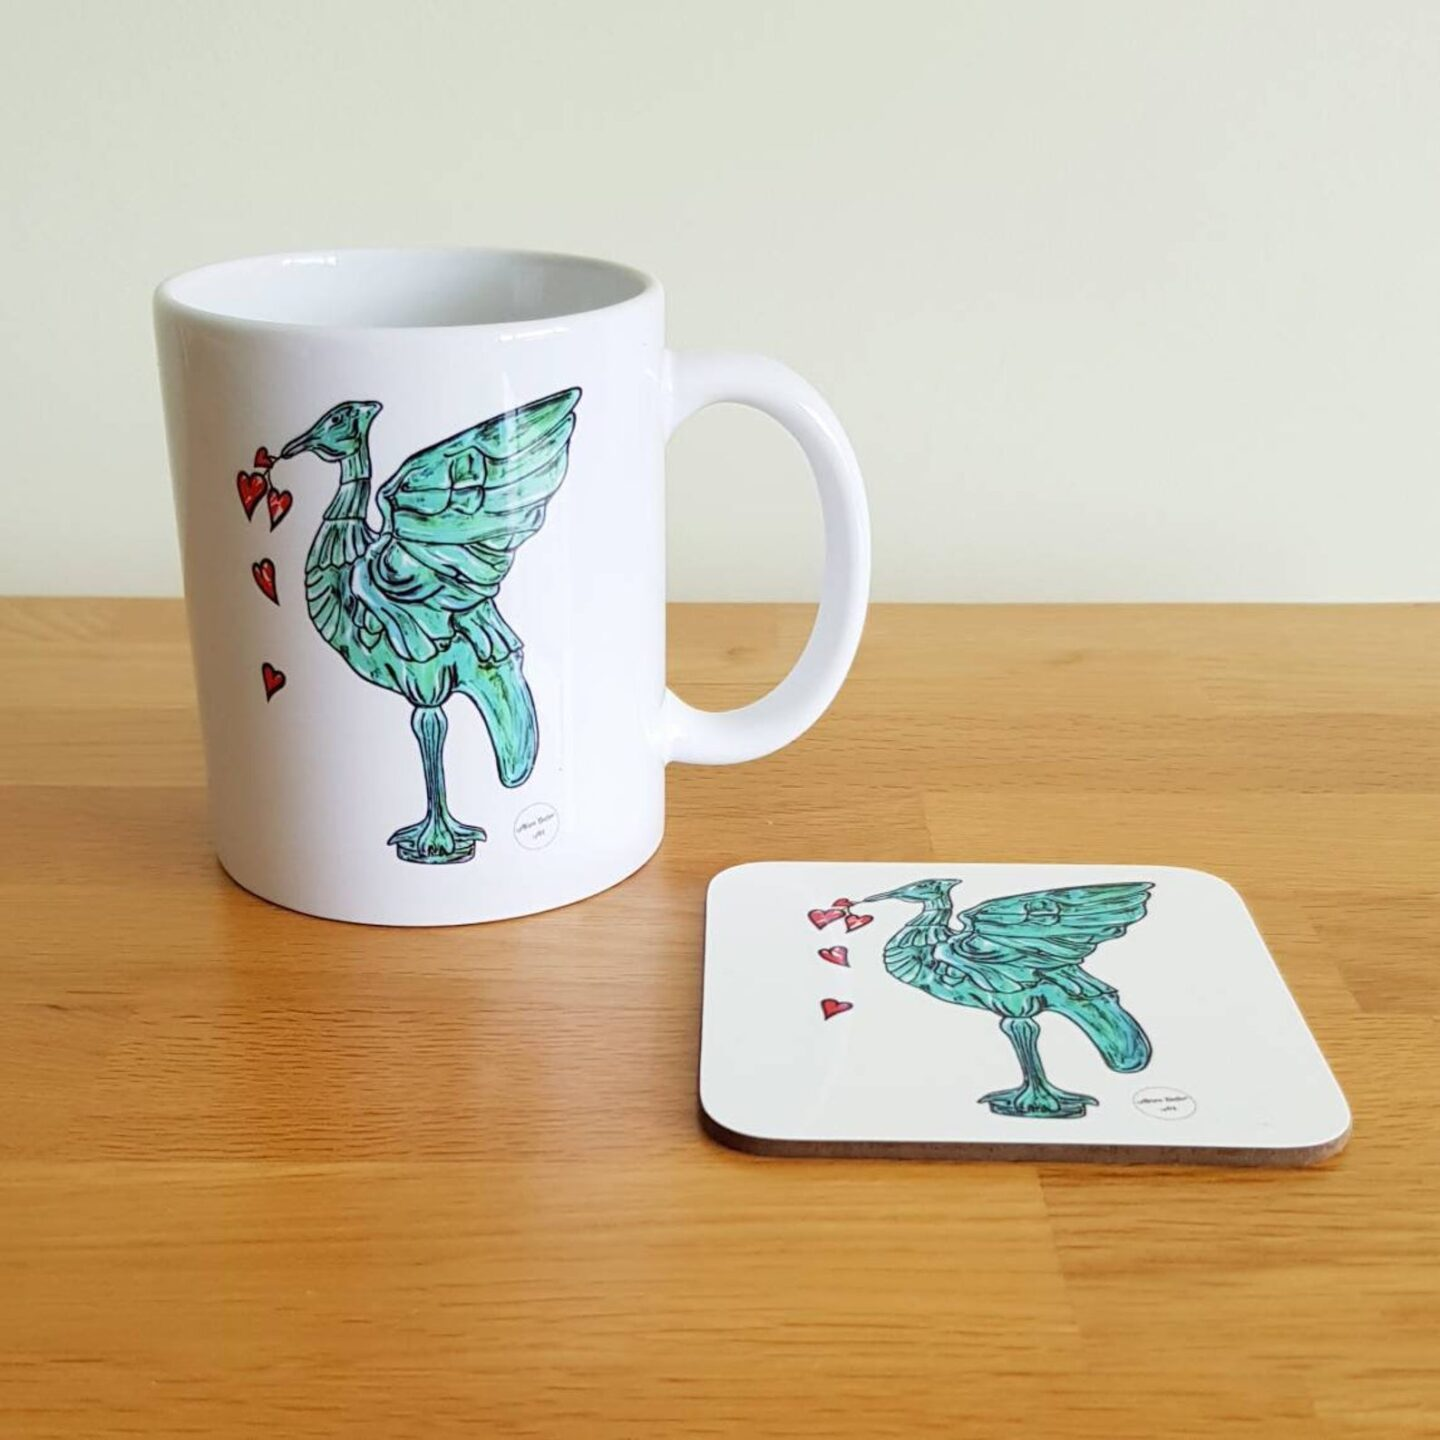 White mug and coaster on a wooden surface. Both have the same hand drawn blue/green coloured Liver Bird with 5 hearts falling from its beak.